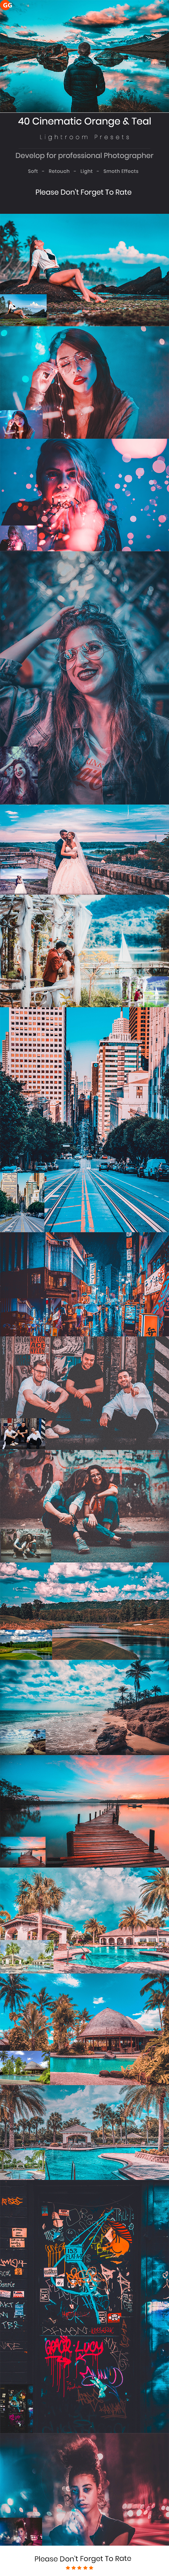 40 Cinematic Orange & Teal Look Lightroom Preset V4 - Cinematic Lightroom Presets